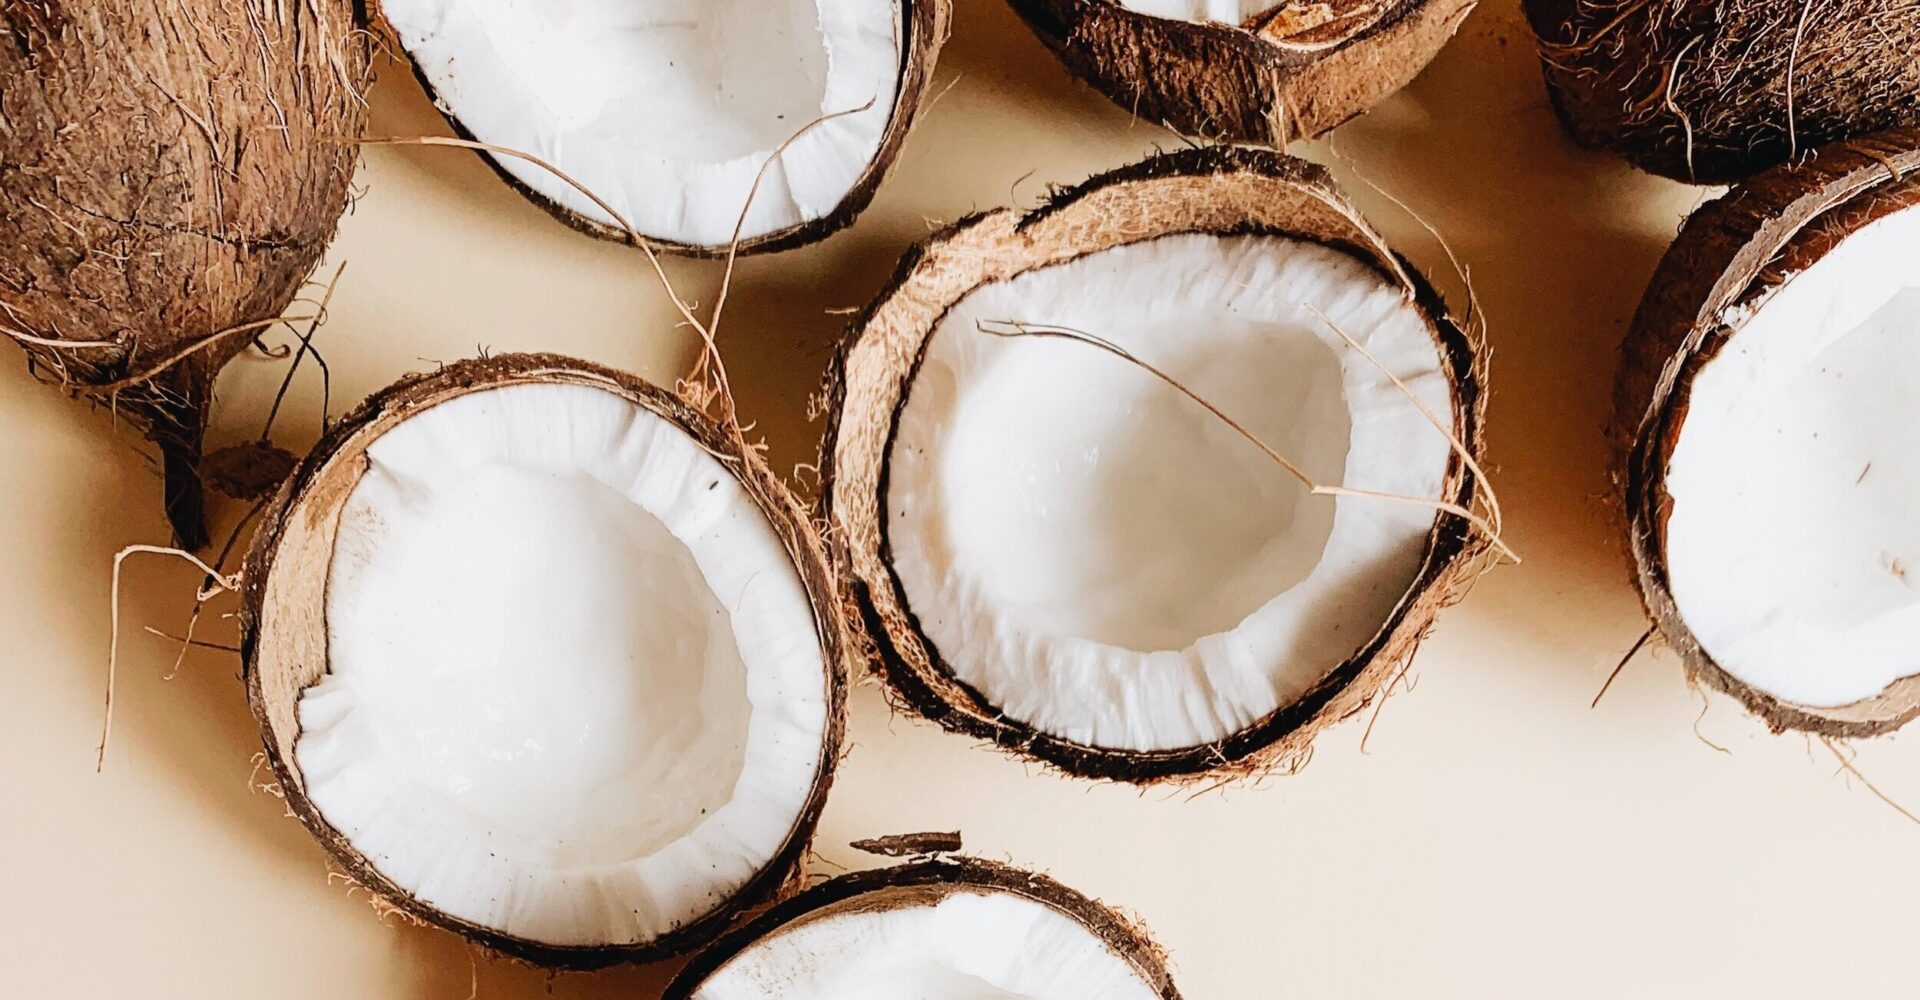 Cracking the history of coconuts